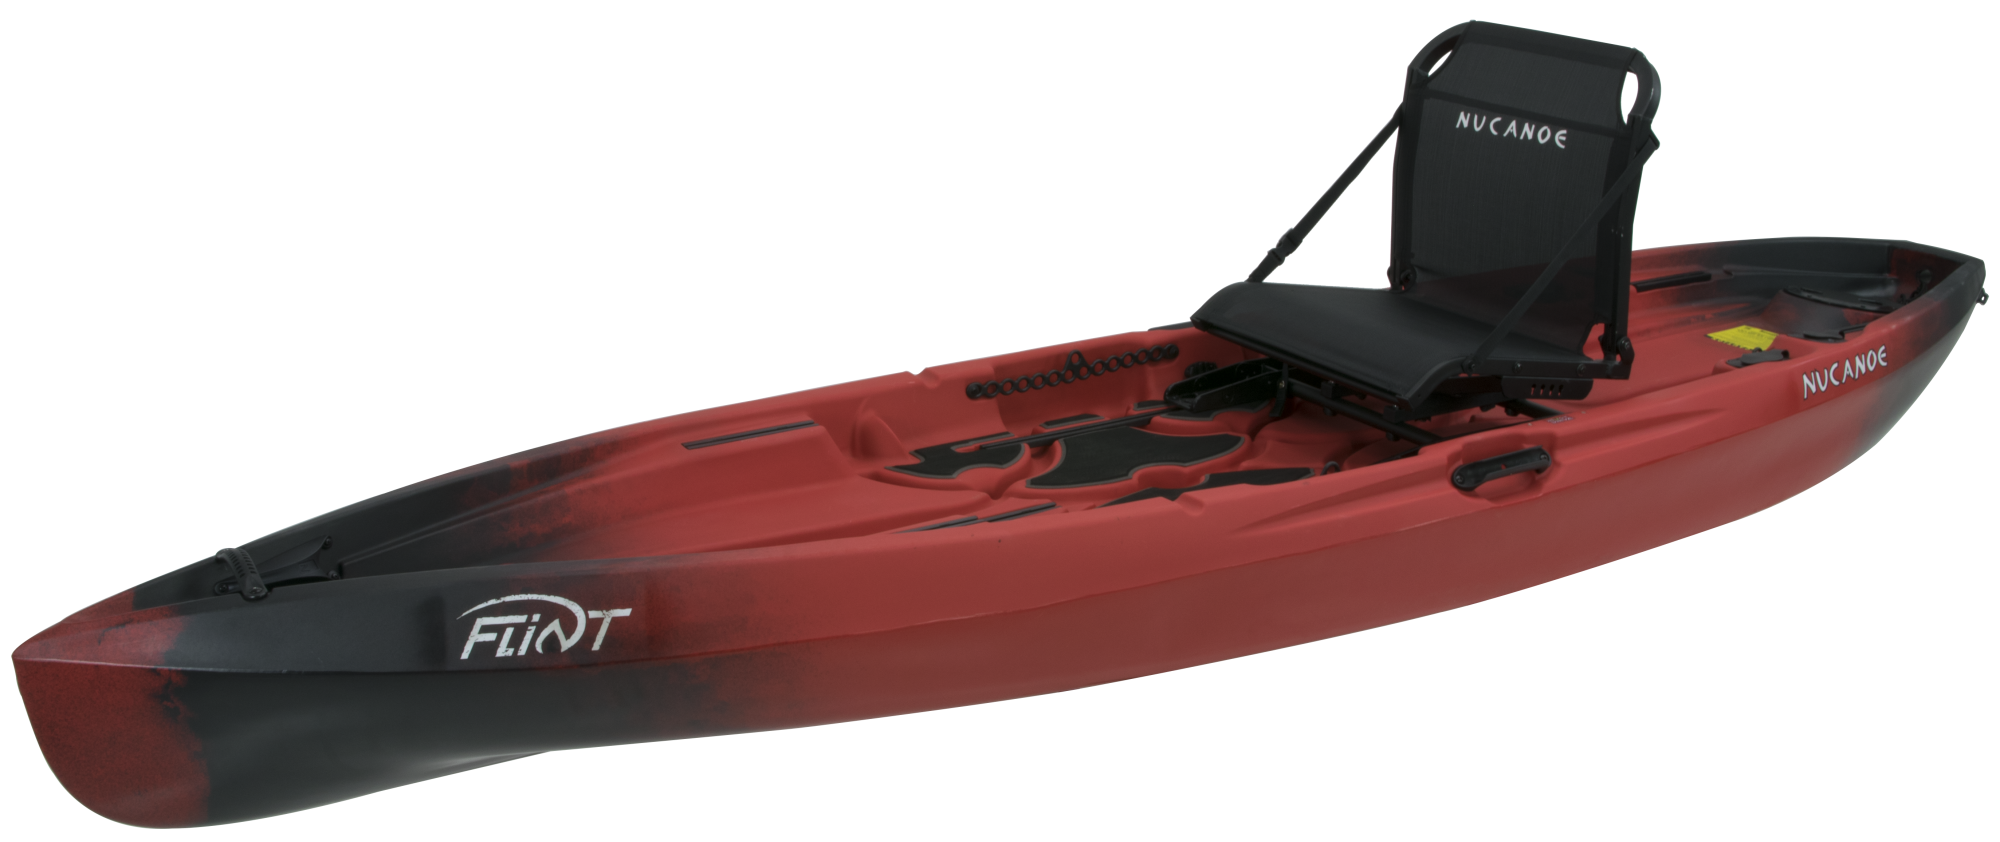 NuCanoe Flint w/ Fusion Seat - IN STOCK